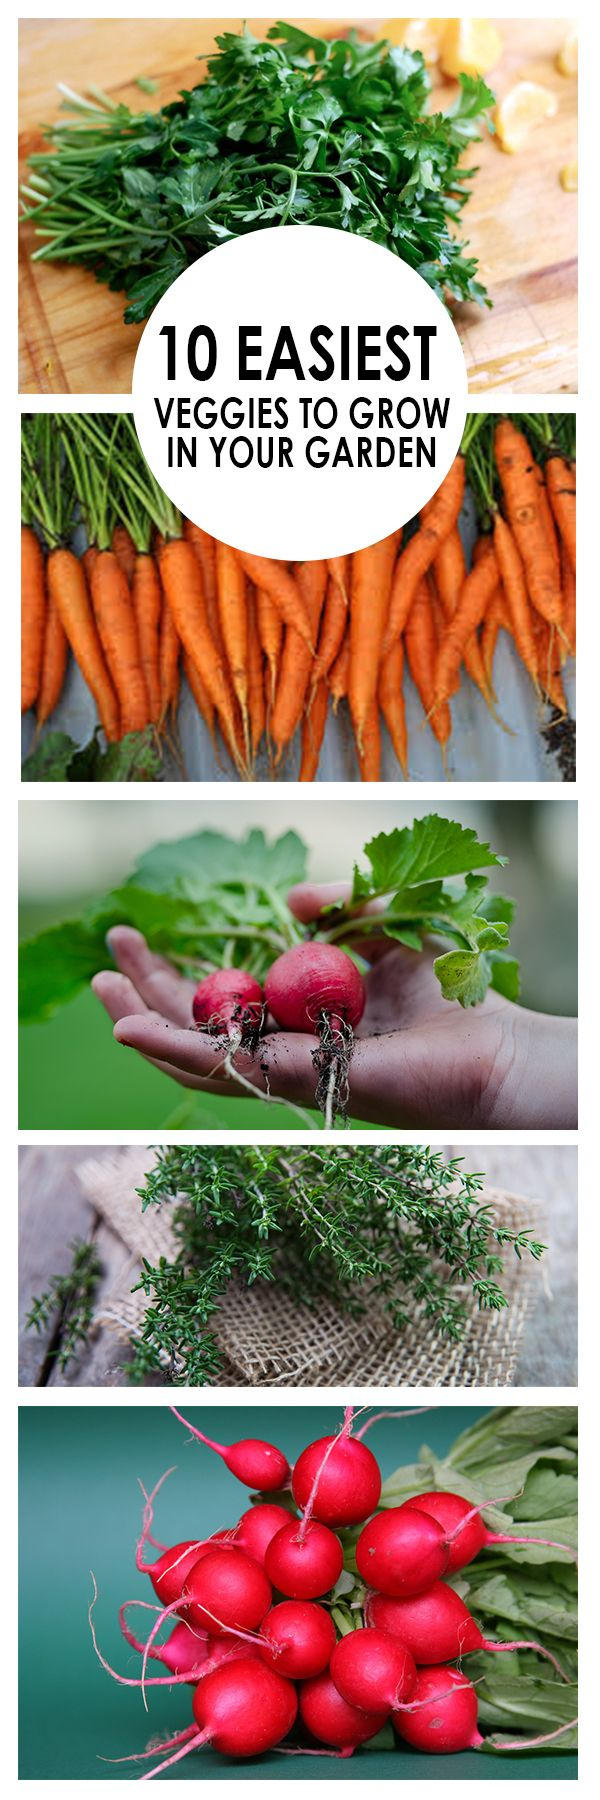 10 Easiest Veggies To Grow In Your Garden